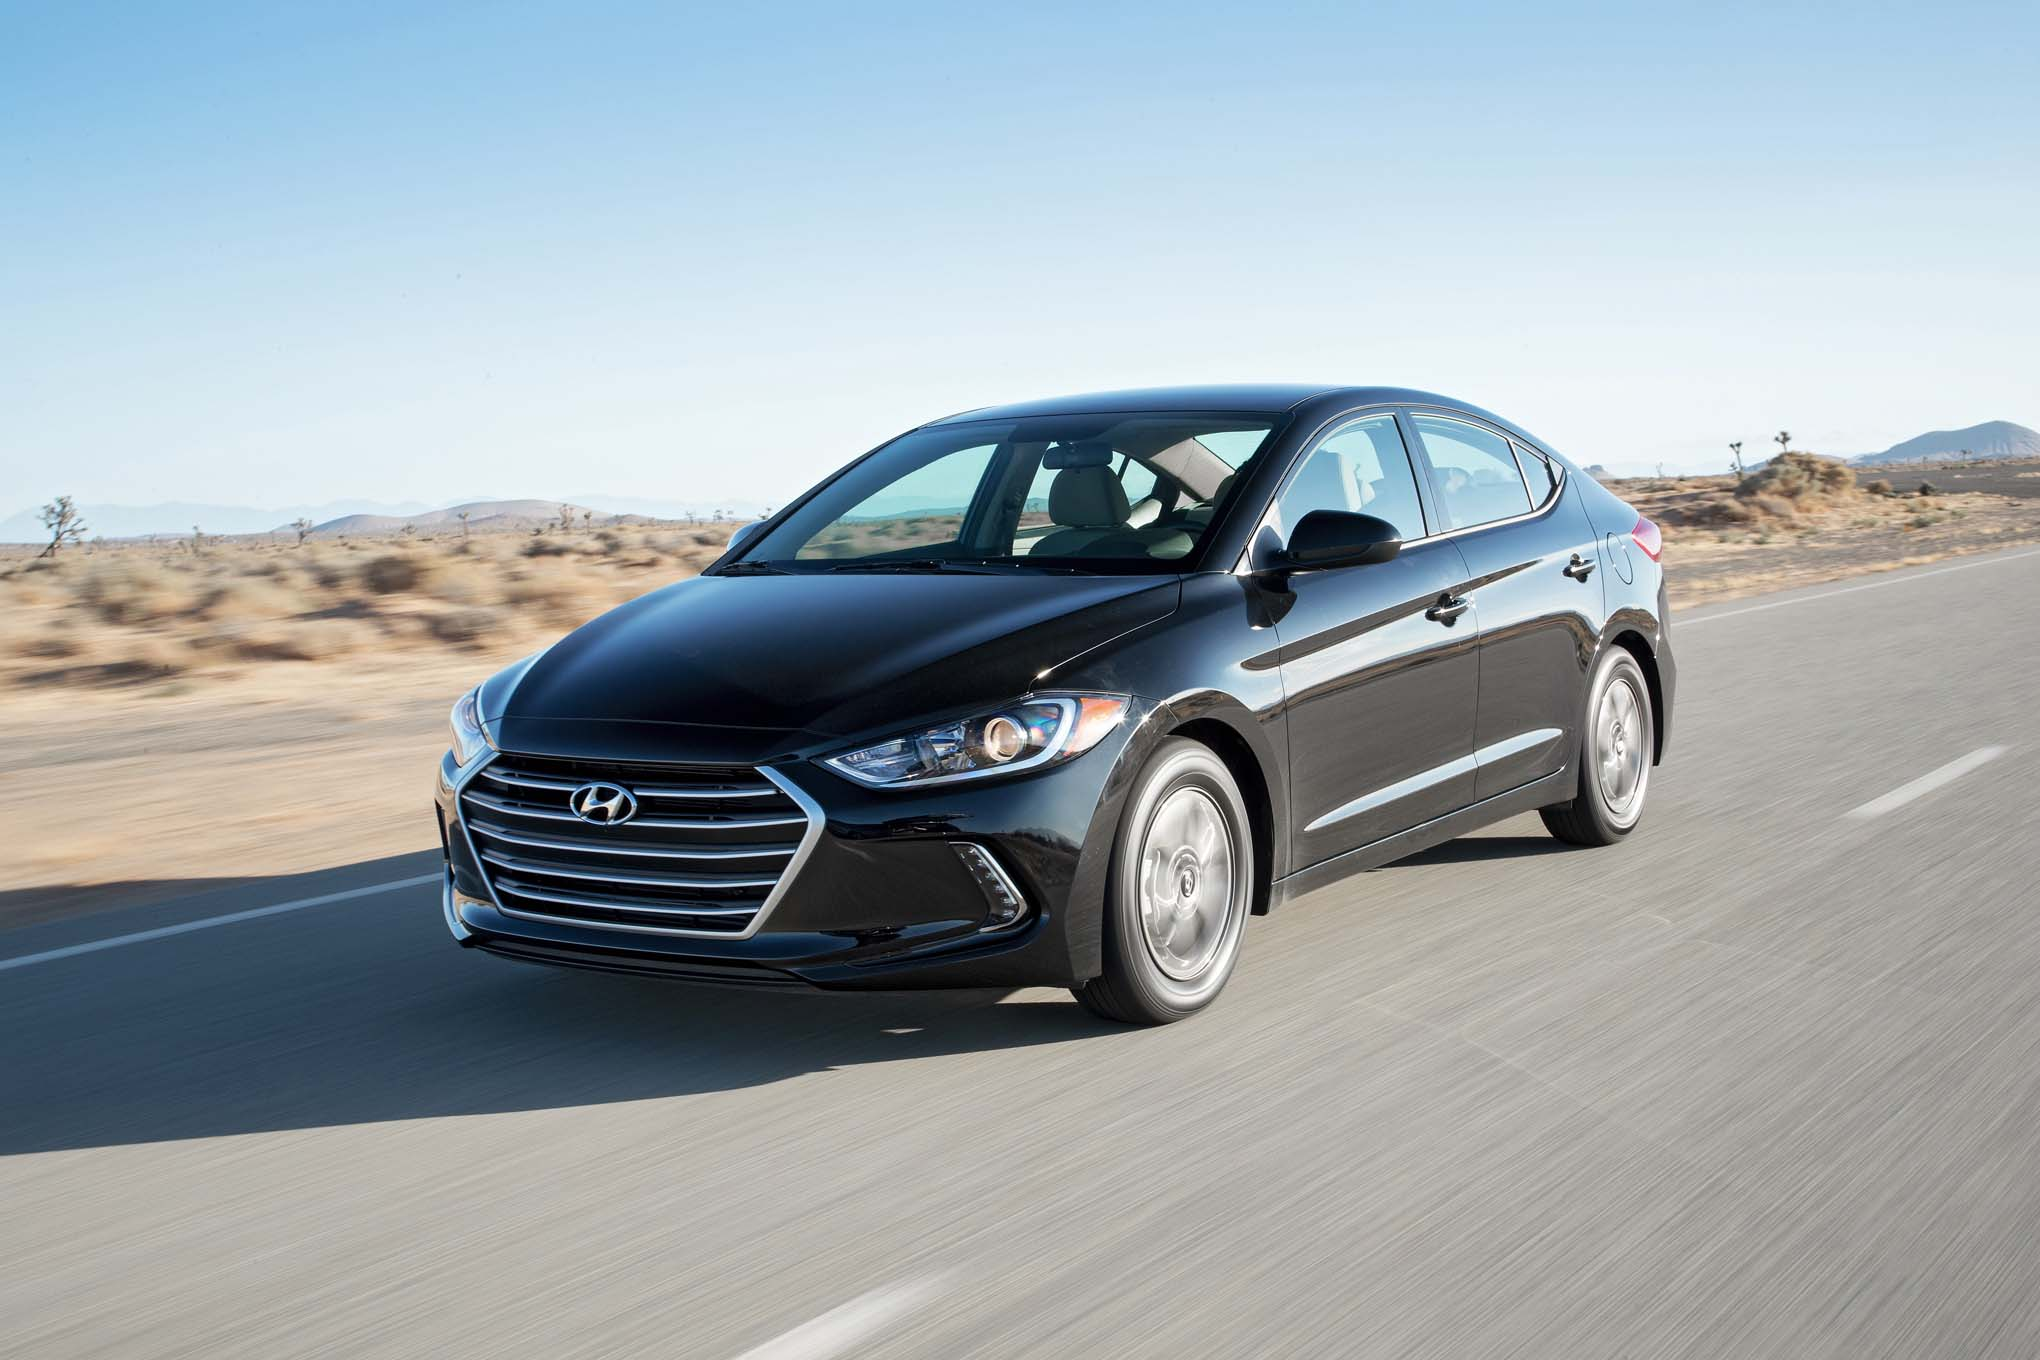 2017 Hyundai Elantra Eco front three quarter in motion